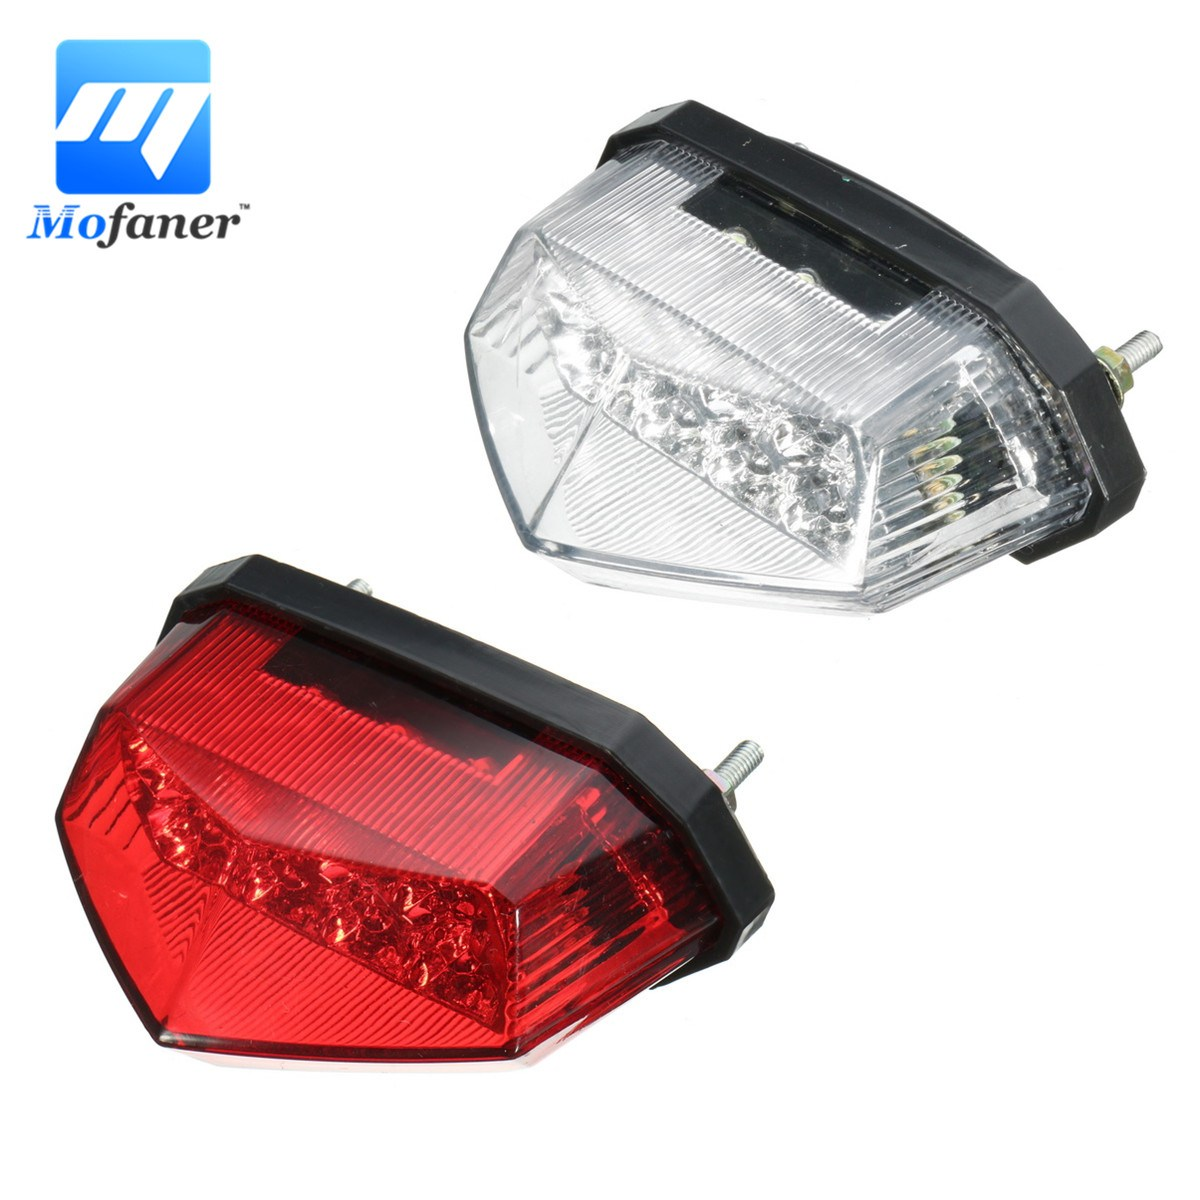 Mofaner Motorcycle ATV Tail Light 11 LEDs Motorbike License Plate Rear Tail Light Stop Brake Lamp 12v led universal motorcycle tail brake light license plate lamp rear stop lamp for harley davidson for honda for suzuki